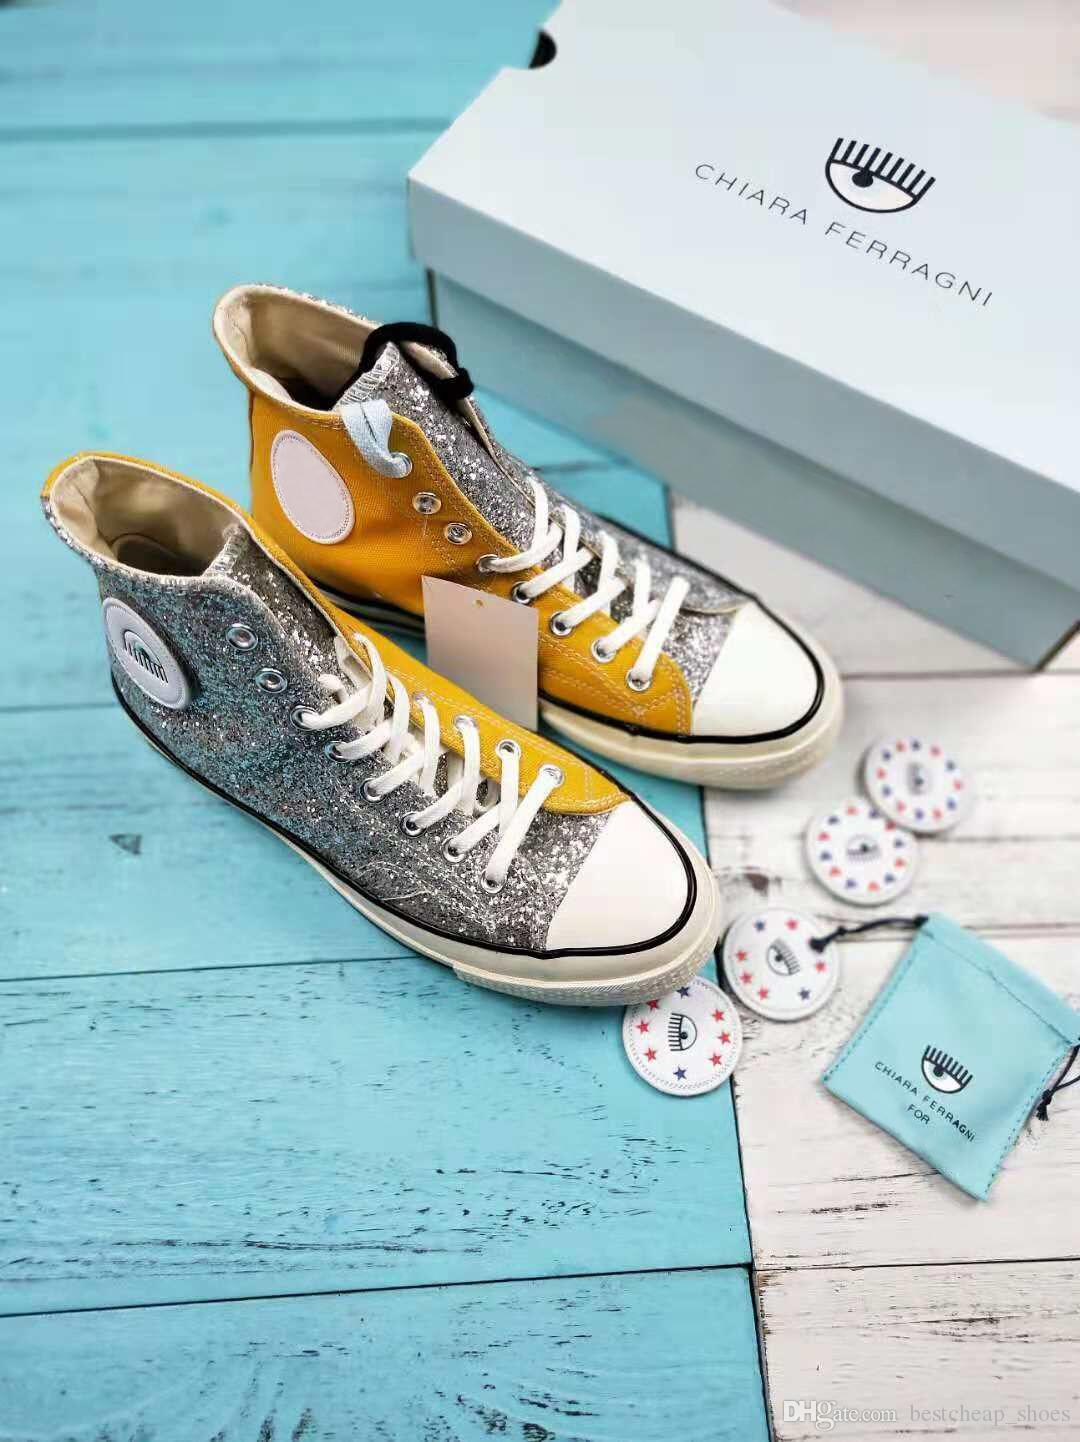 2020 New Chiara Ferragni X One Star Eyes 74 OX Pinstripe 1970s Mens Chuck Casual Canvas Shoes Skate Womens Glitter Silver Designer Sneakers From